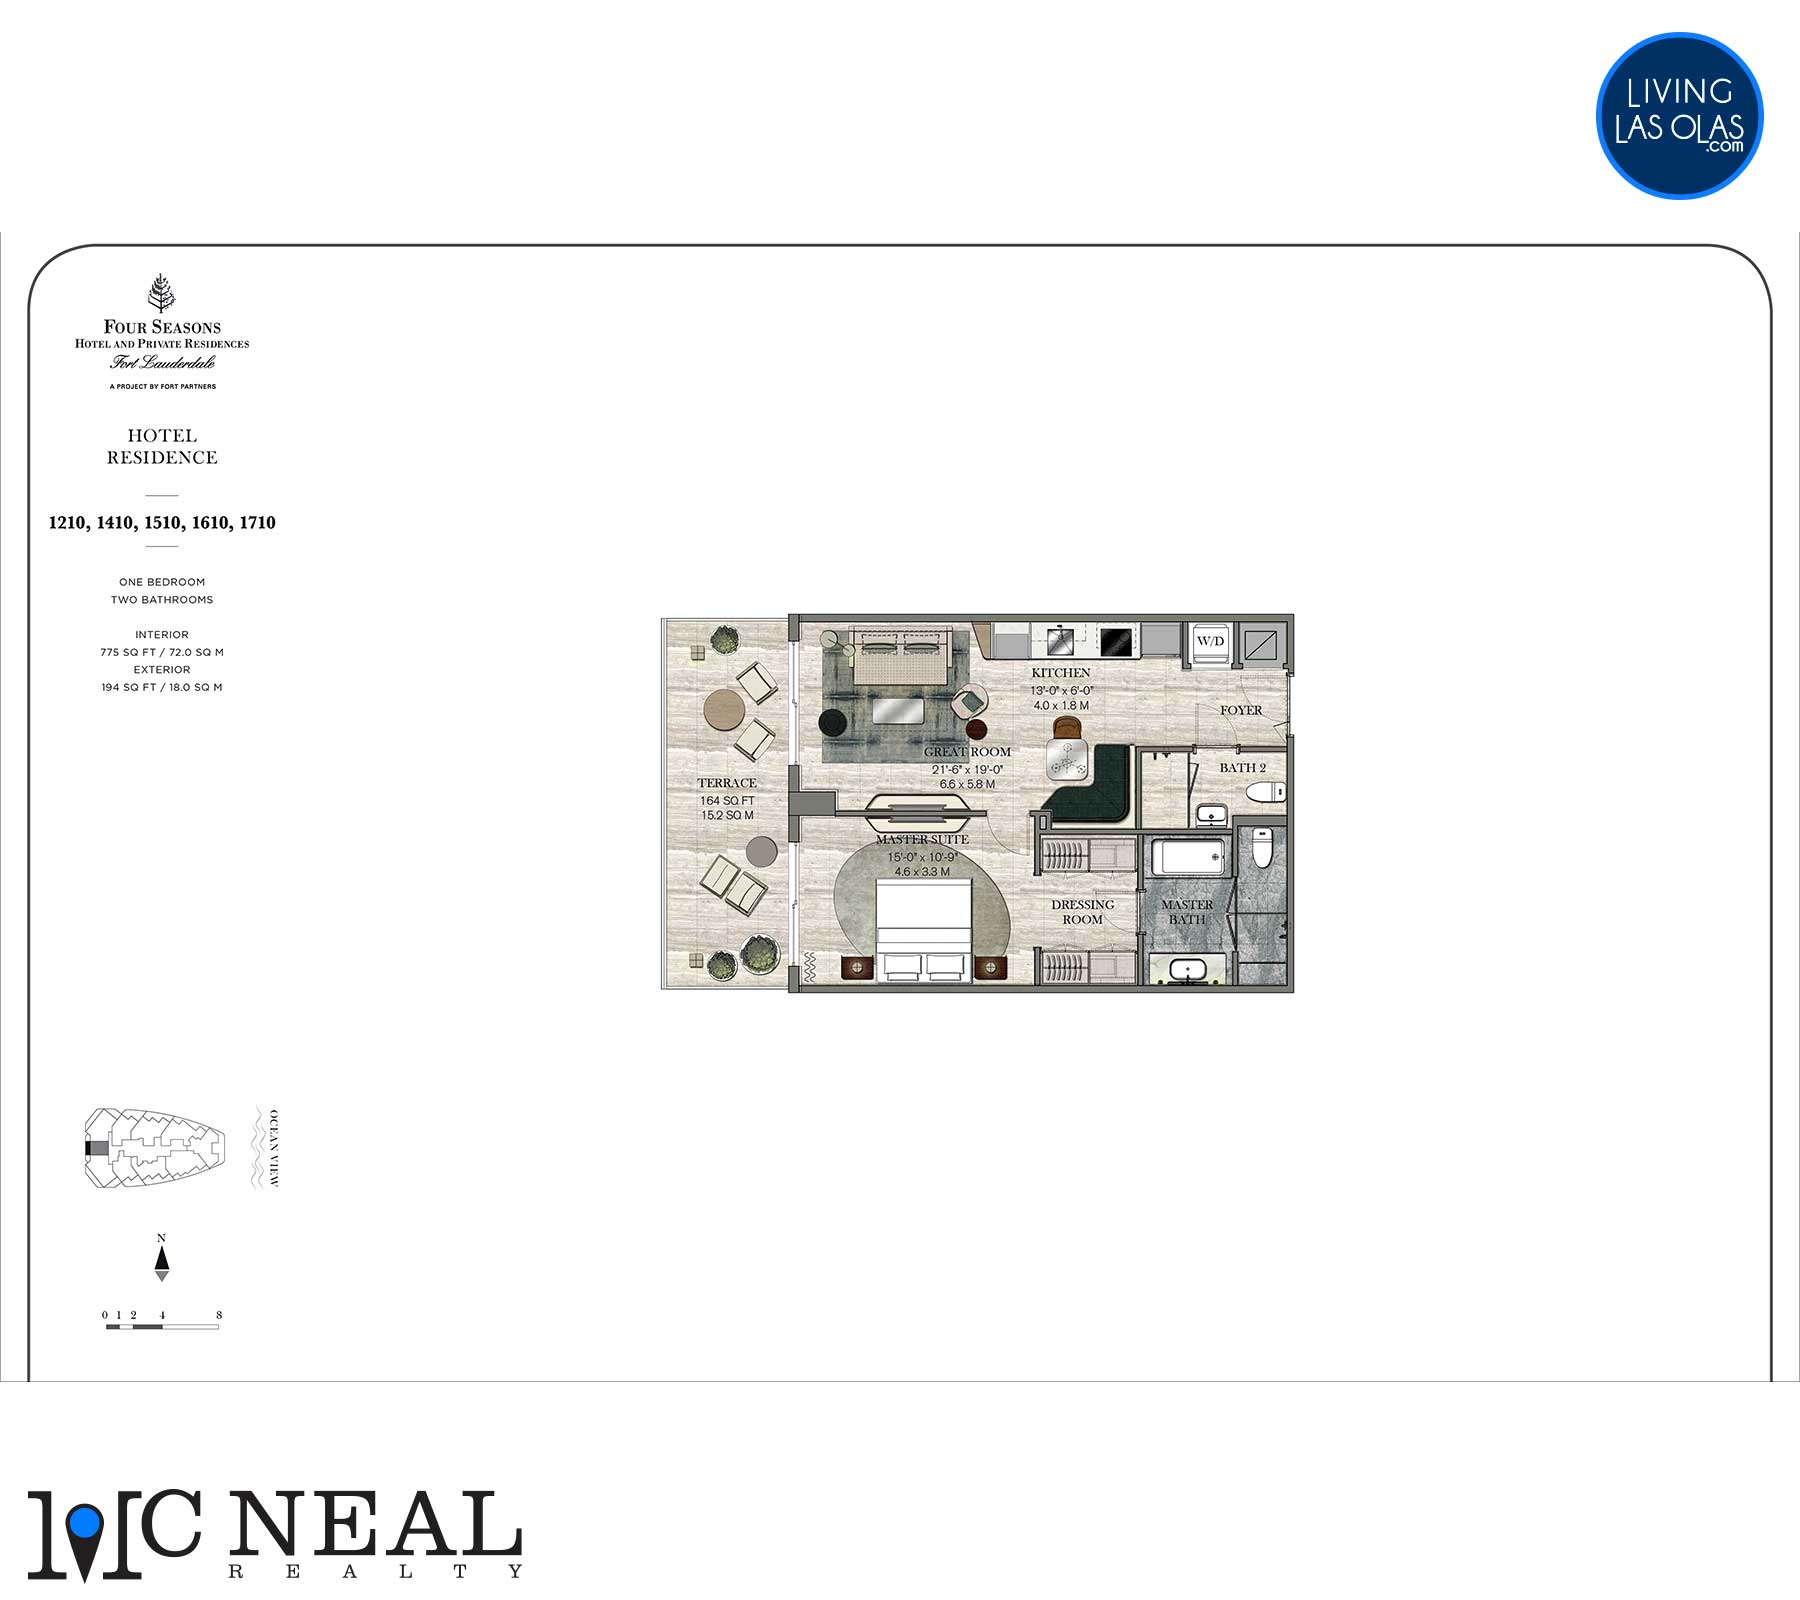 Four Seasons Hotel Residences Floor Plan 1210-1710